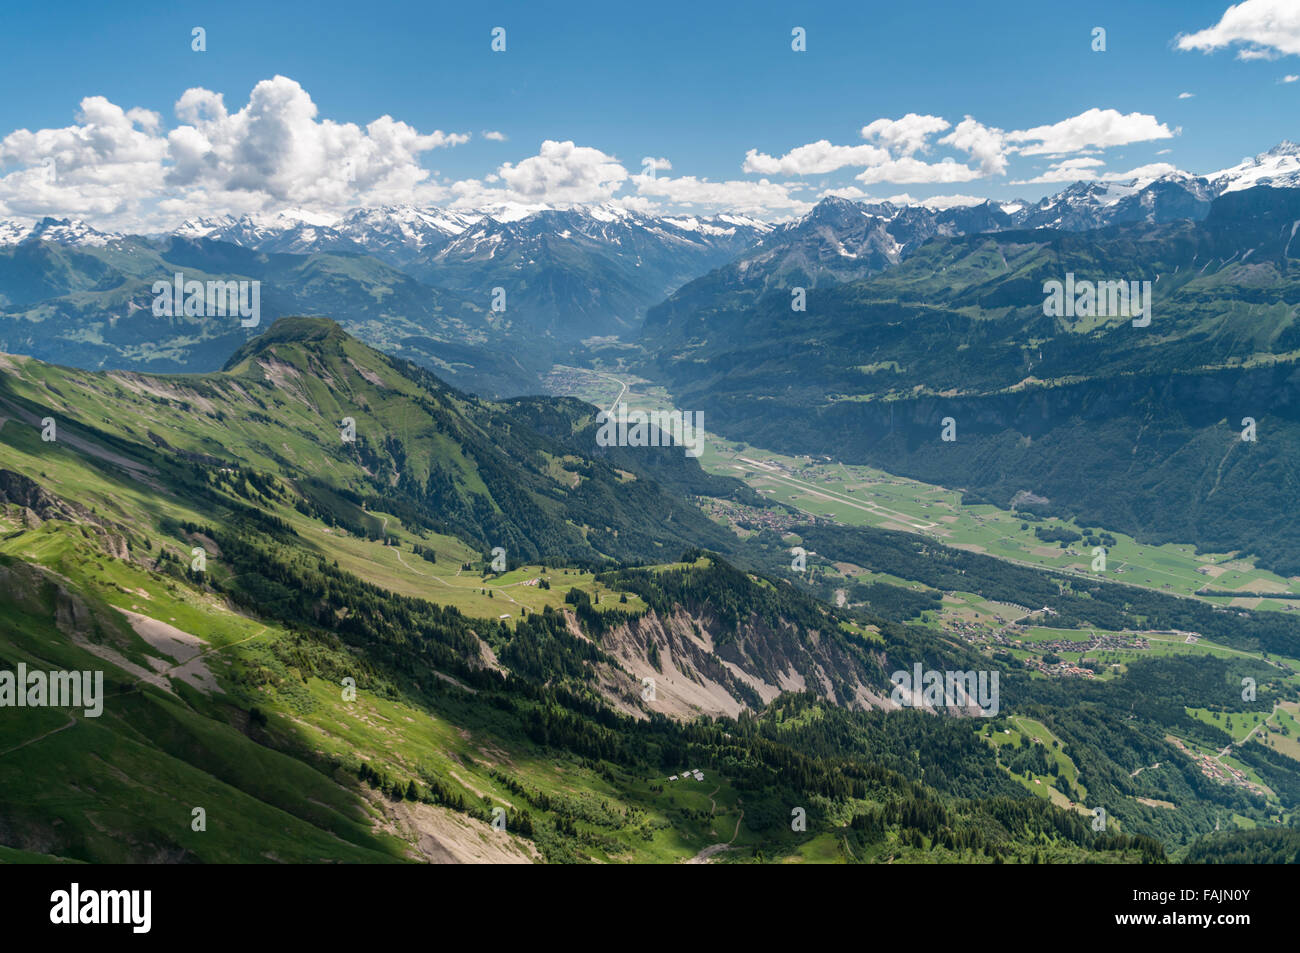 View of Haslital valley, Meiringen Airport, and the Alps. Berner Oberland, Switzerland. Picture taken from the summit - Stock Image